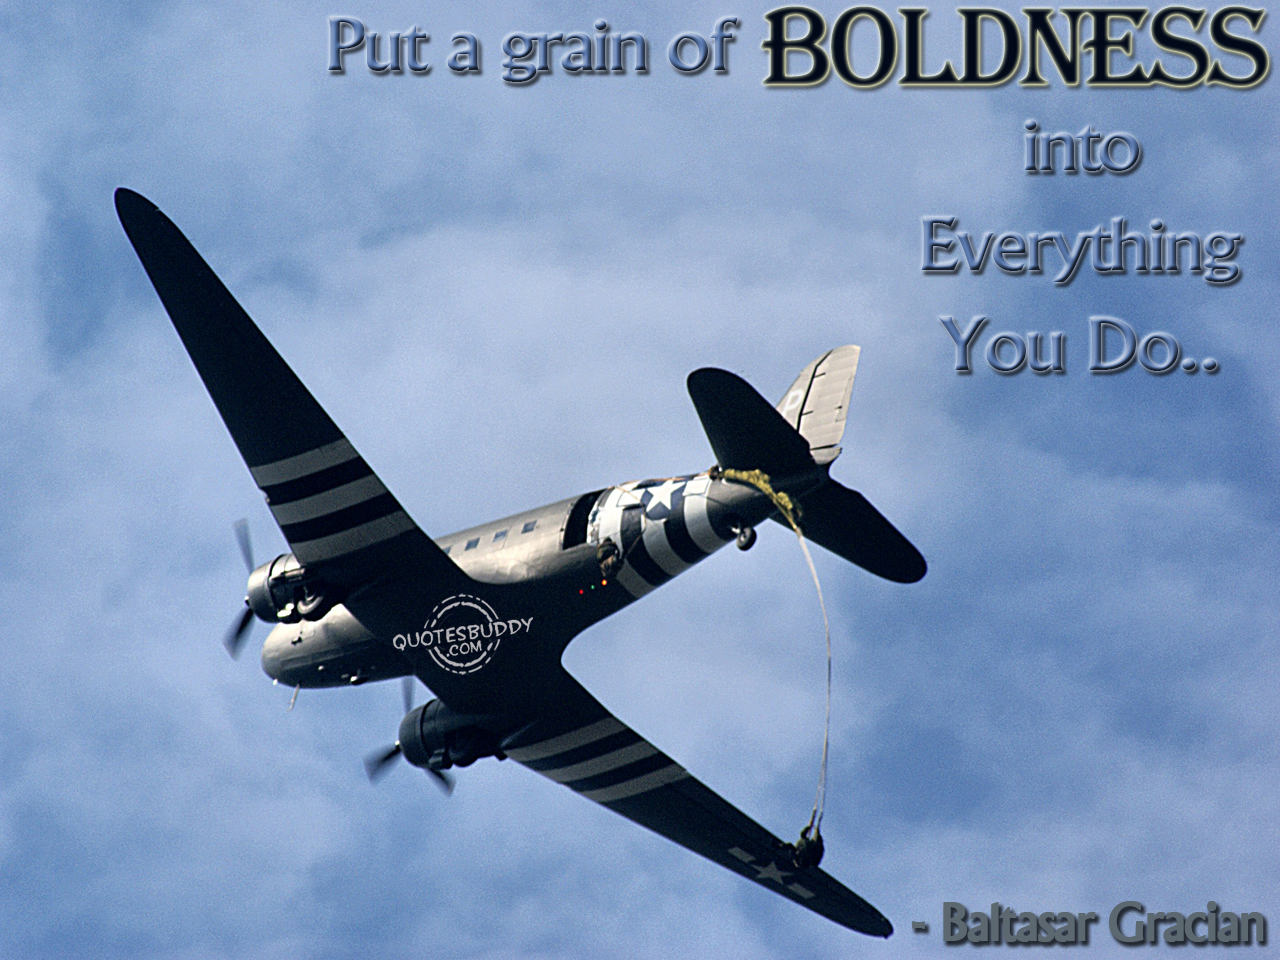 Put a grain of boldness into everything you do. Baltasar Gracian